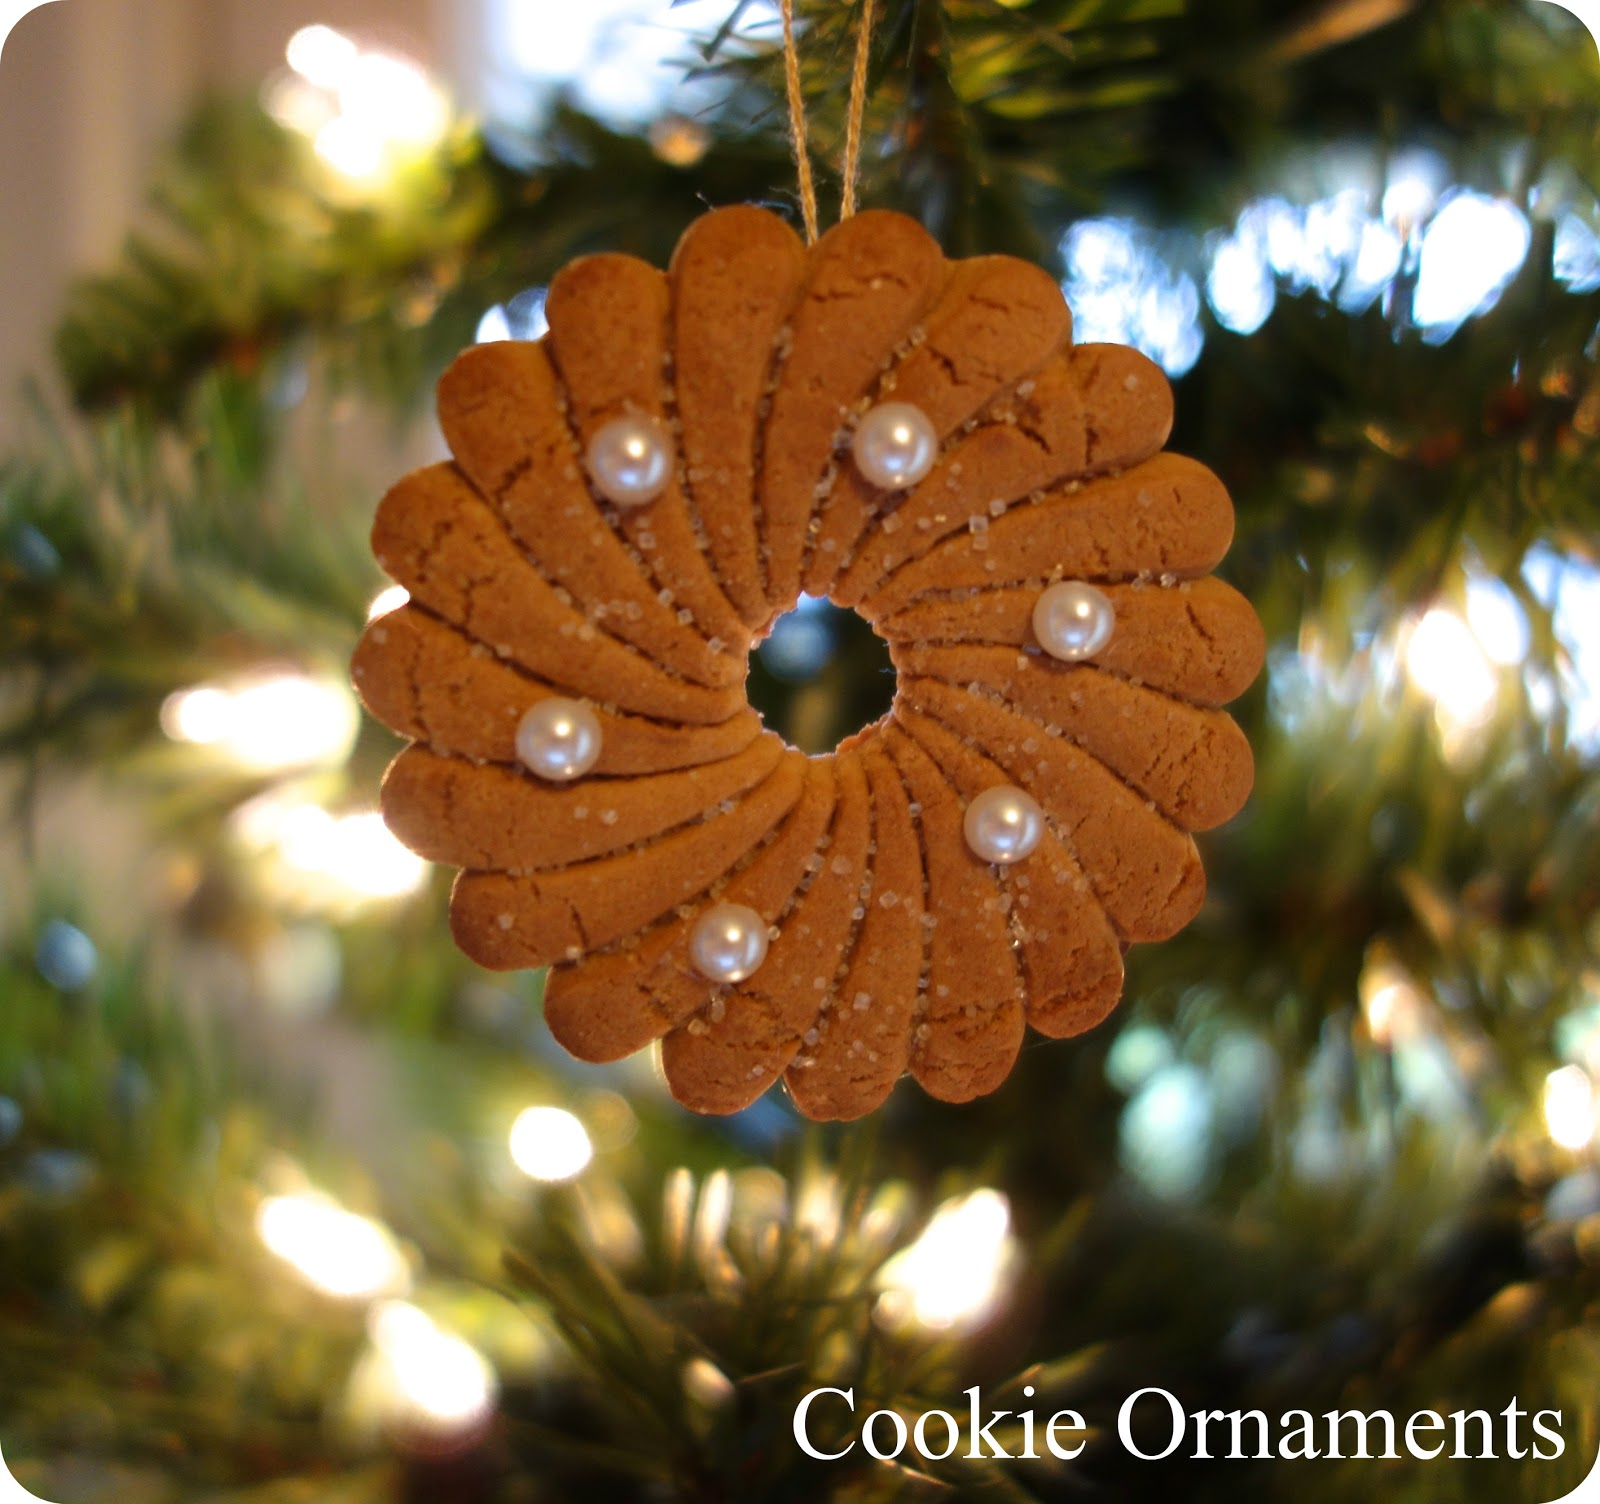 Cousin ornaments - Dollar Store Cookie Ornaments